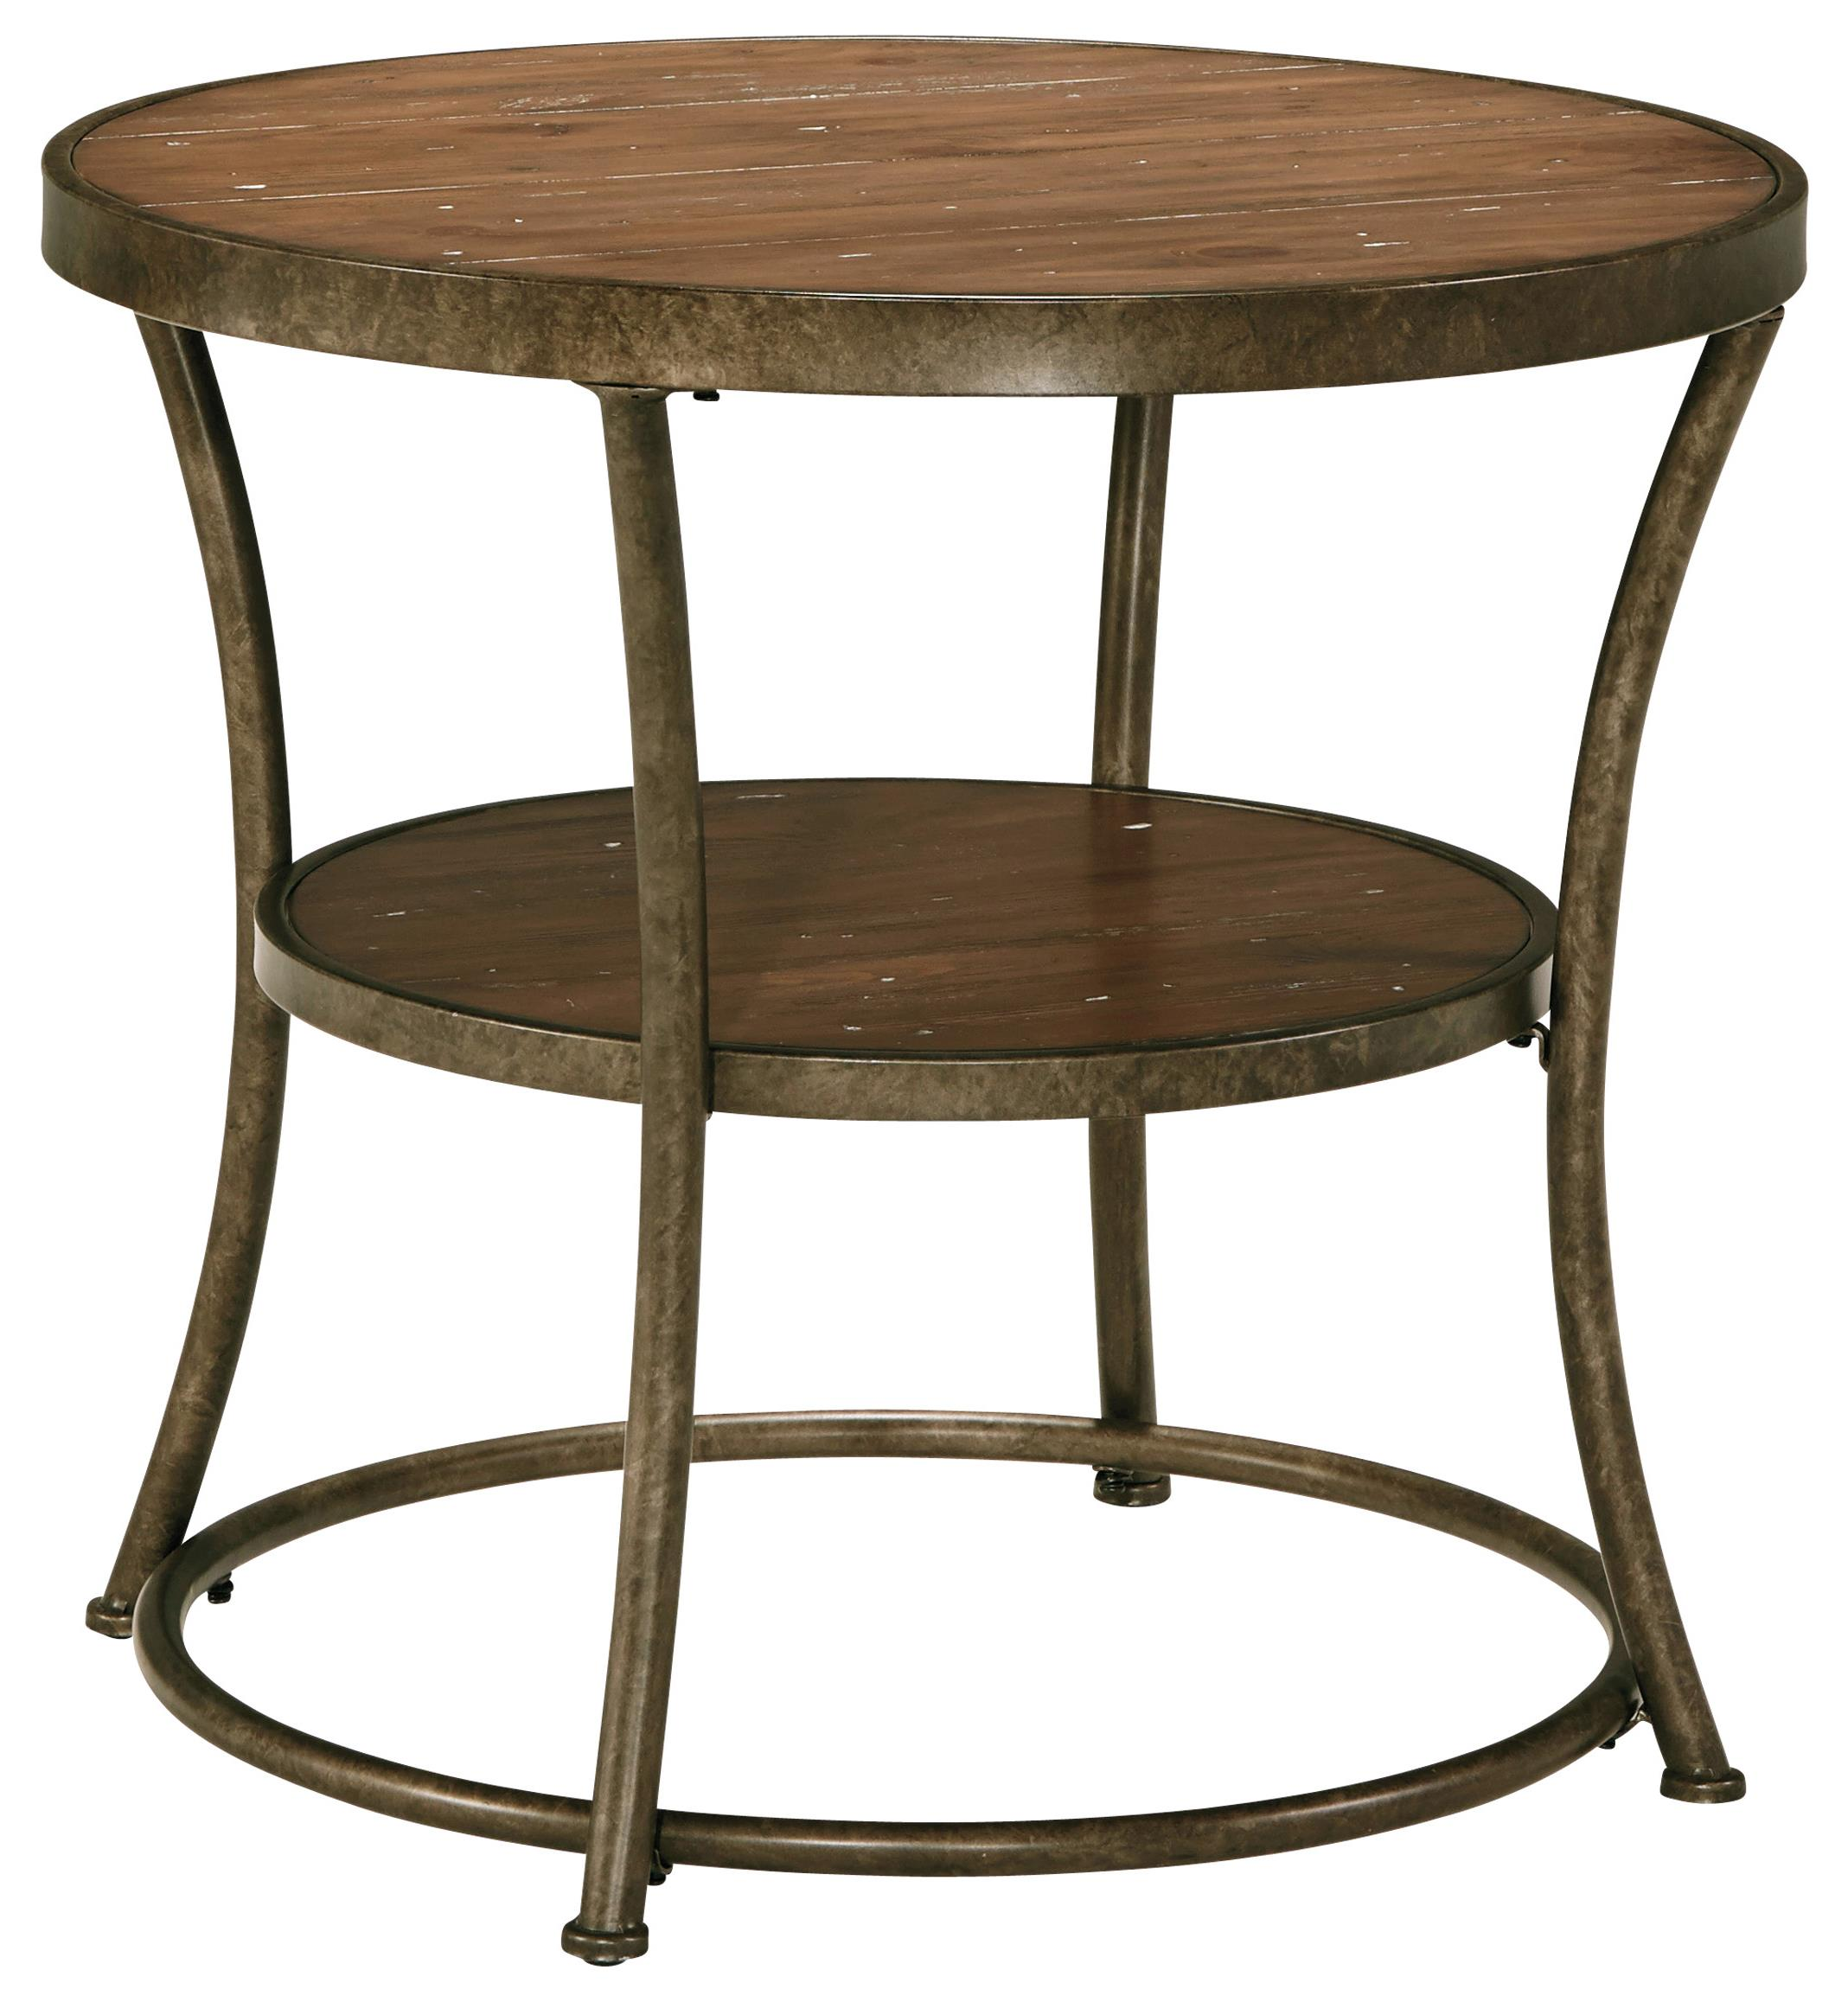 Signature Design by Ashley Nartina Round End Table - Item Number: T805-6